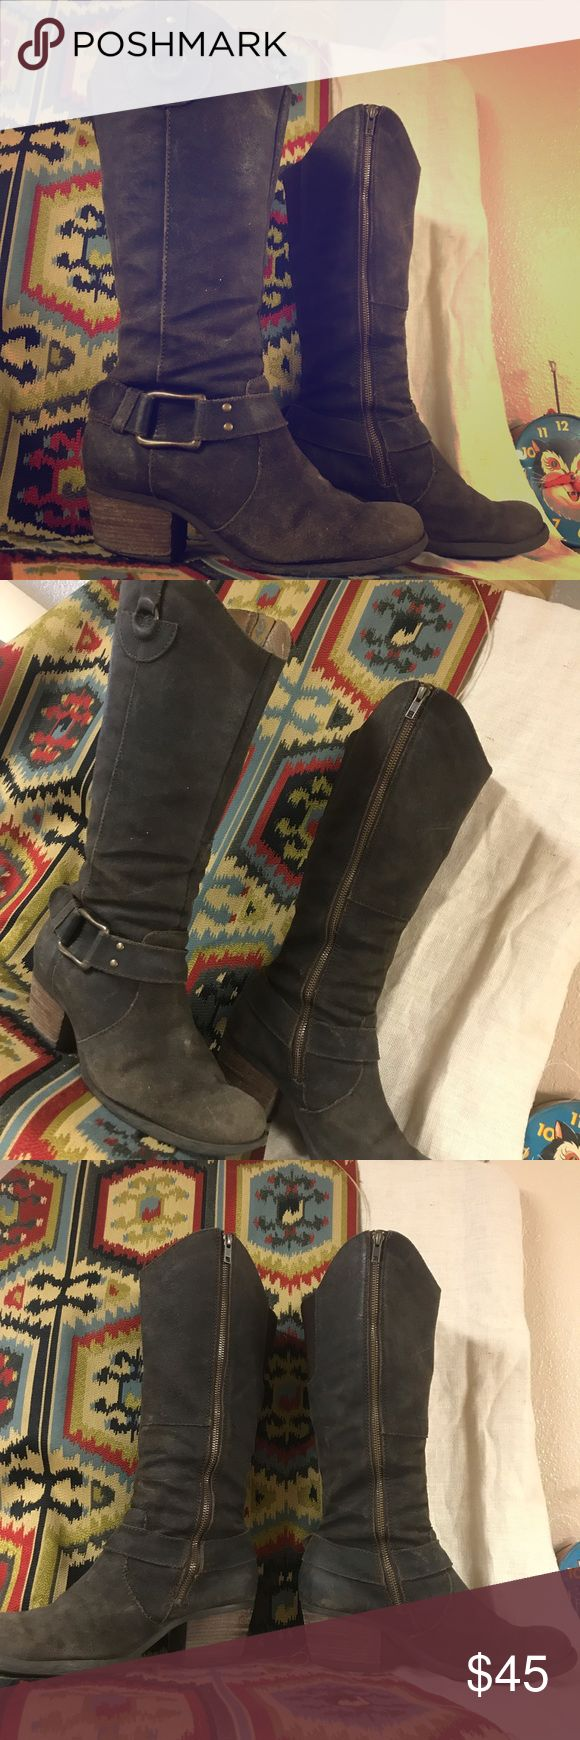 Born Boho Brown Leather Boots Preloved Genuine Leather Born Dark Brown Boots. Toe area slightly discolored, giving them a distressed boho look. Zippers are in good working condition. Signs of spots, but could be from manufacturing. Soles show signs of wear, though no apparent rips, tears, or holes. An overall comfortable Boot sure to last a long time. Born Shoes Heeled Boots